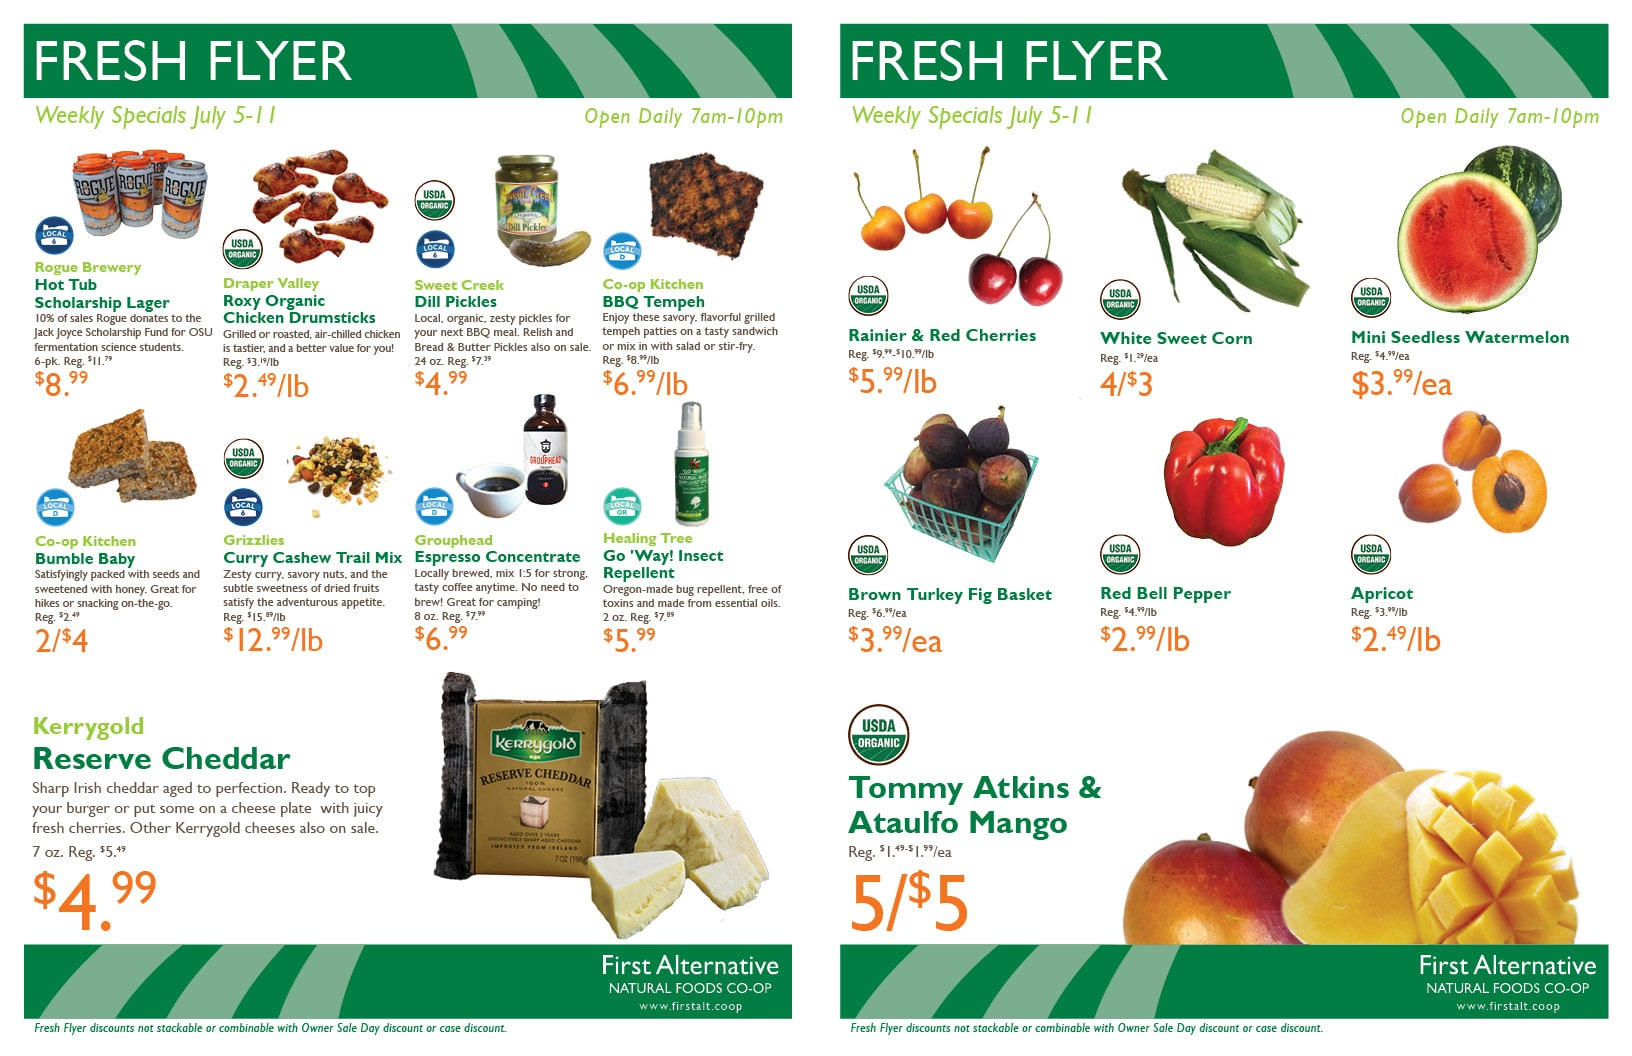 First Alternative Co-op Fresh Flyer July 5-11